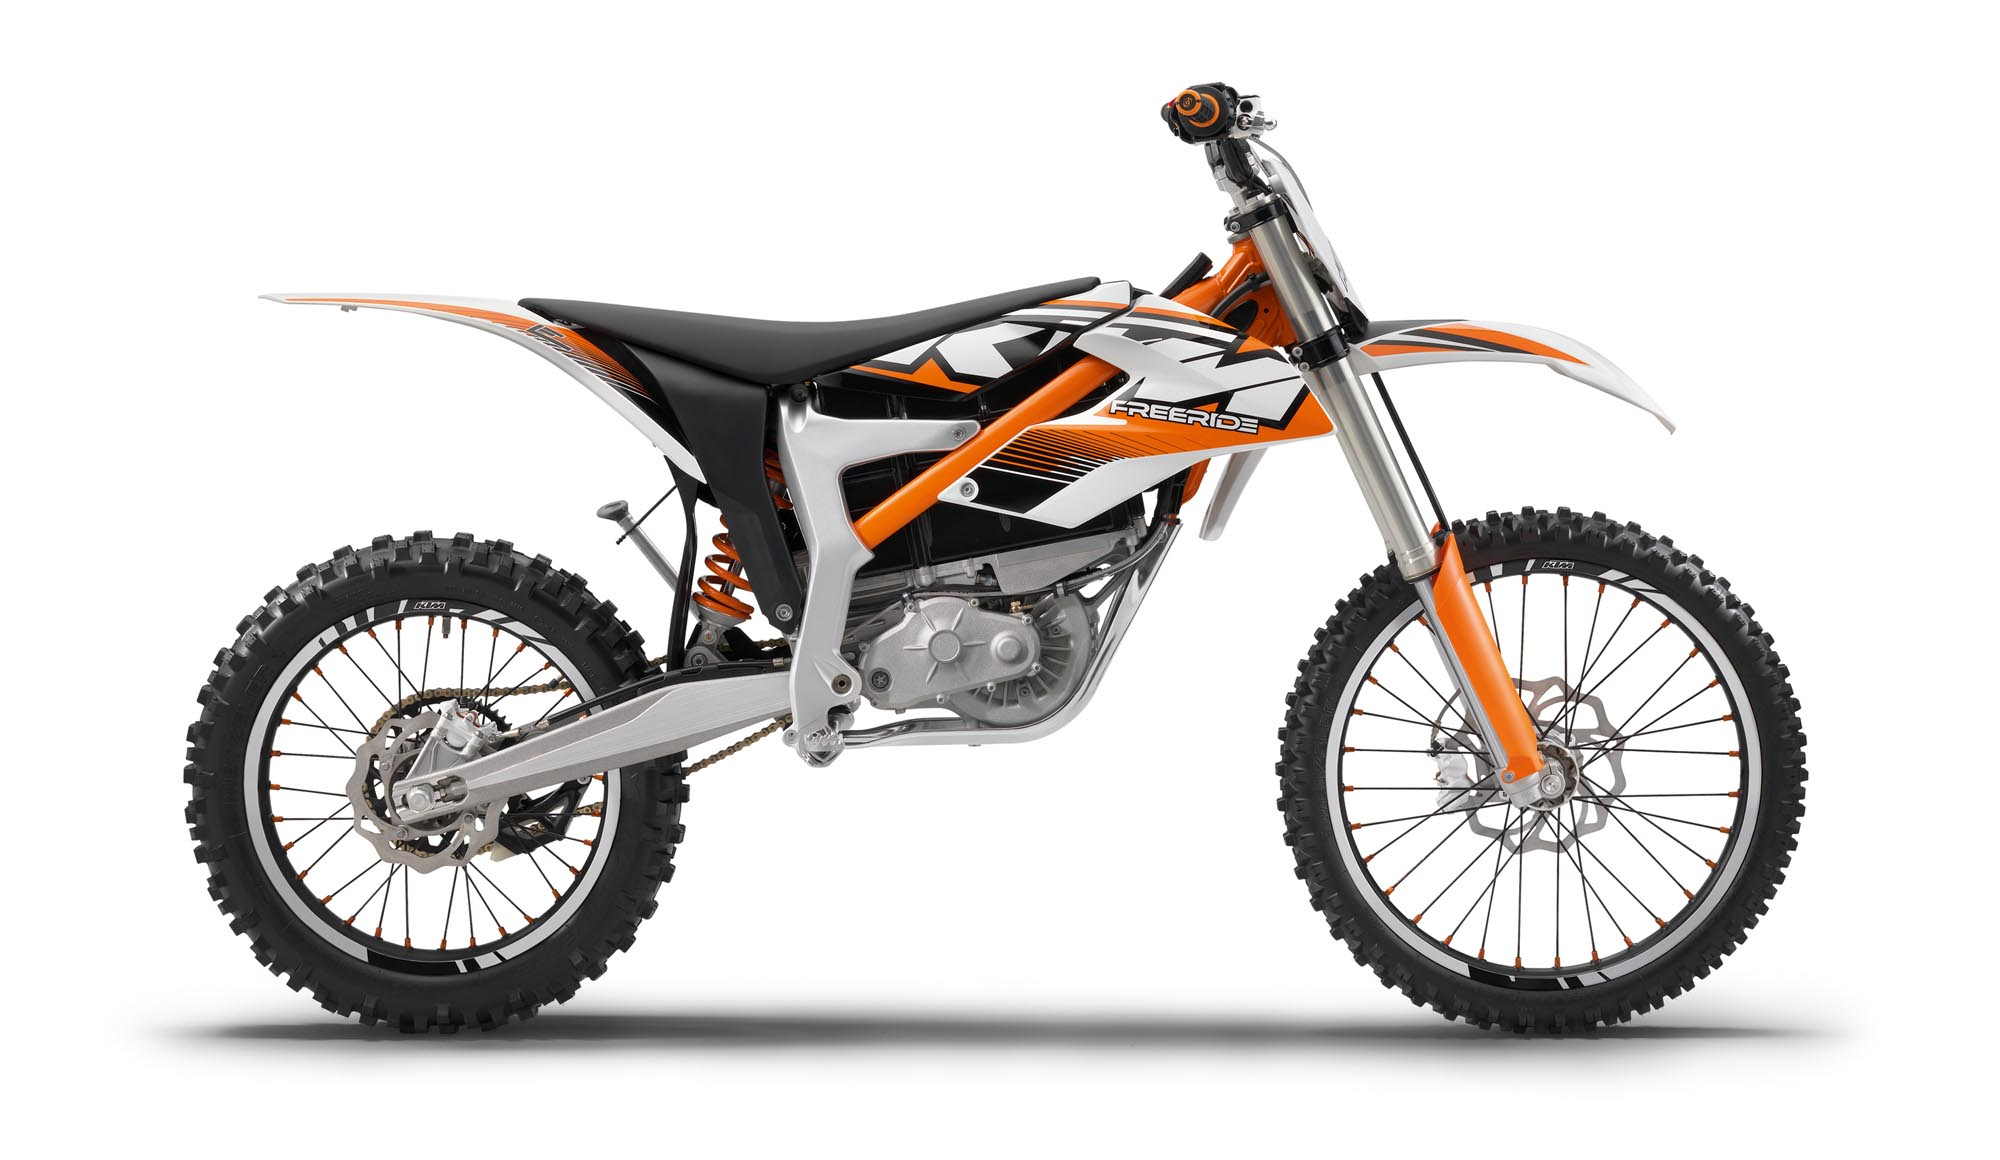 battery powered motorcycles for adults with 2016 Ktm 300 Xc on Honda Goes Electric Racing moreover The Beast Off Road Electric Scooter further Thekofmania forumeiros as well 50mph Electric Bicycle For  muting also alibaba   productdetail 3wheelselectricscooterstreetlegal 60196089517.